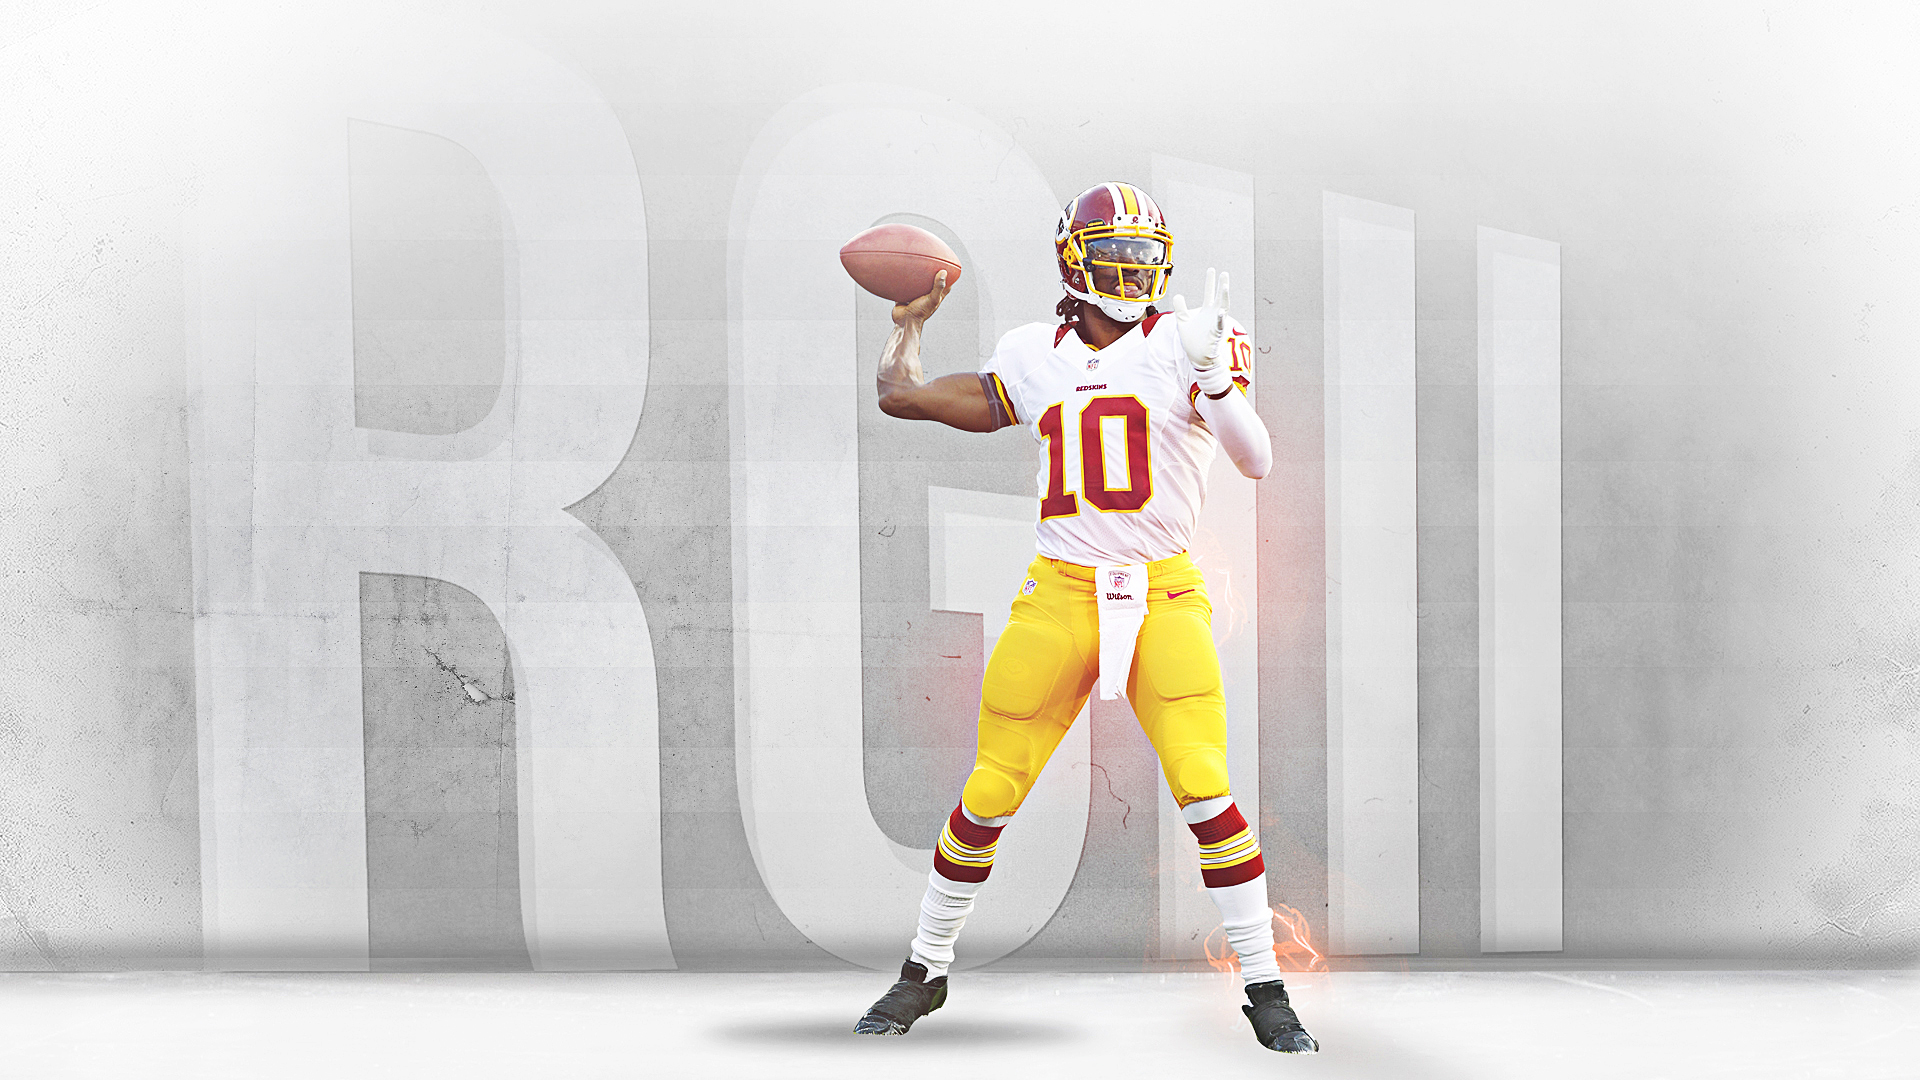 Best 49 Rg3 Wallpaper On Hipwallpaper Rg3 Wallpaper Rg3